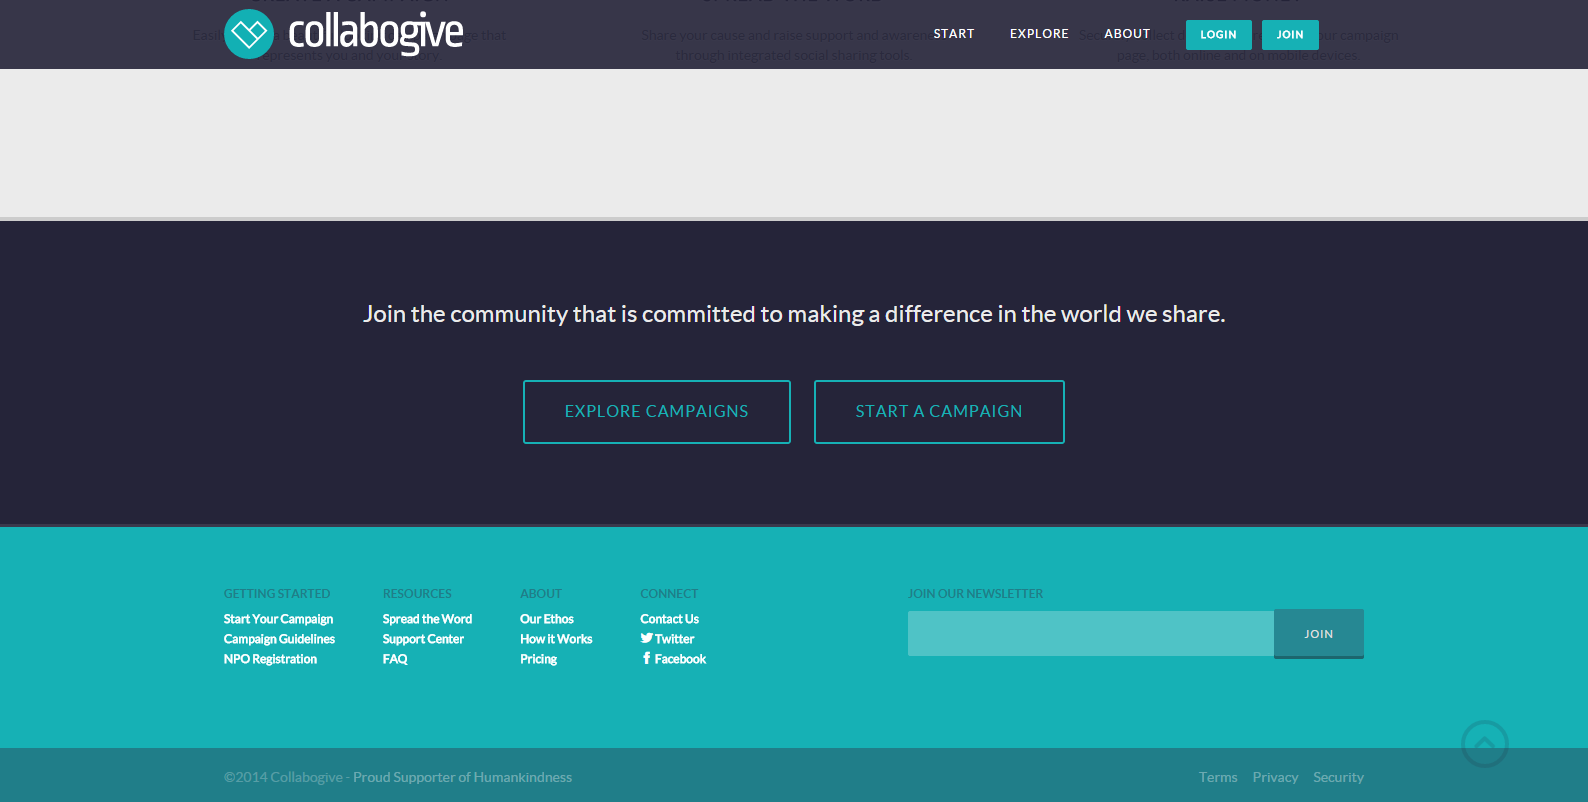 collabogive - Web Page Design Ideas